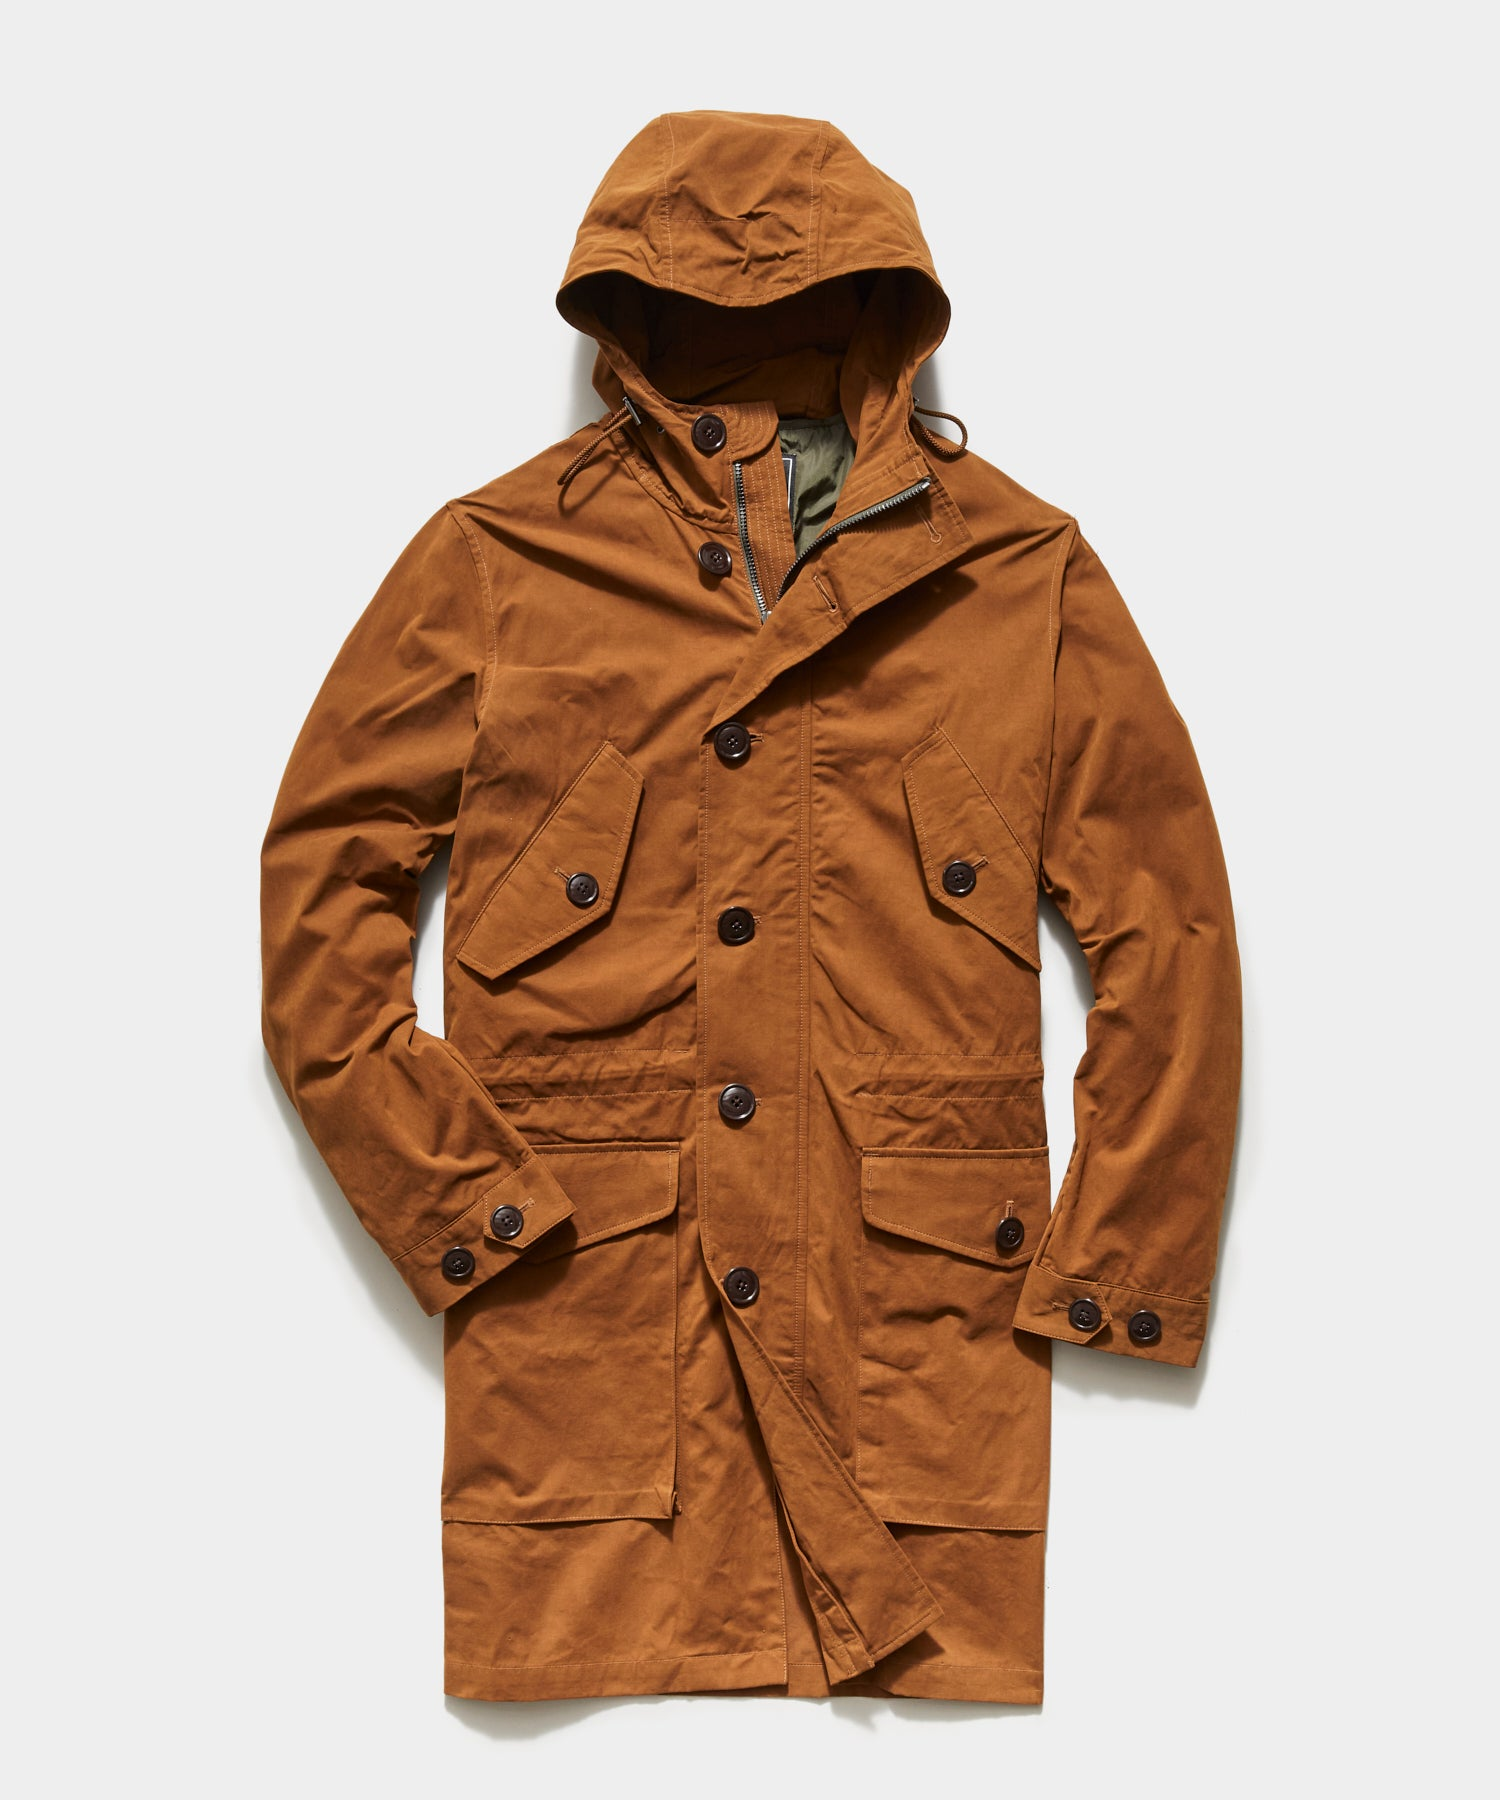 Made in New York 3-1 Parka in Yukon Gold